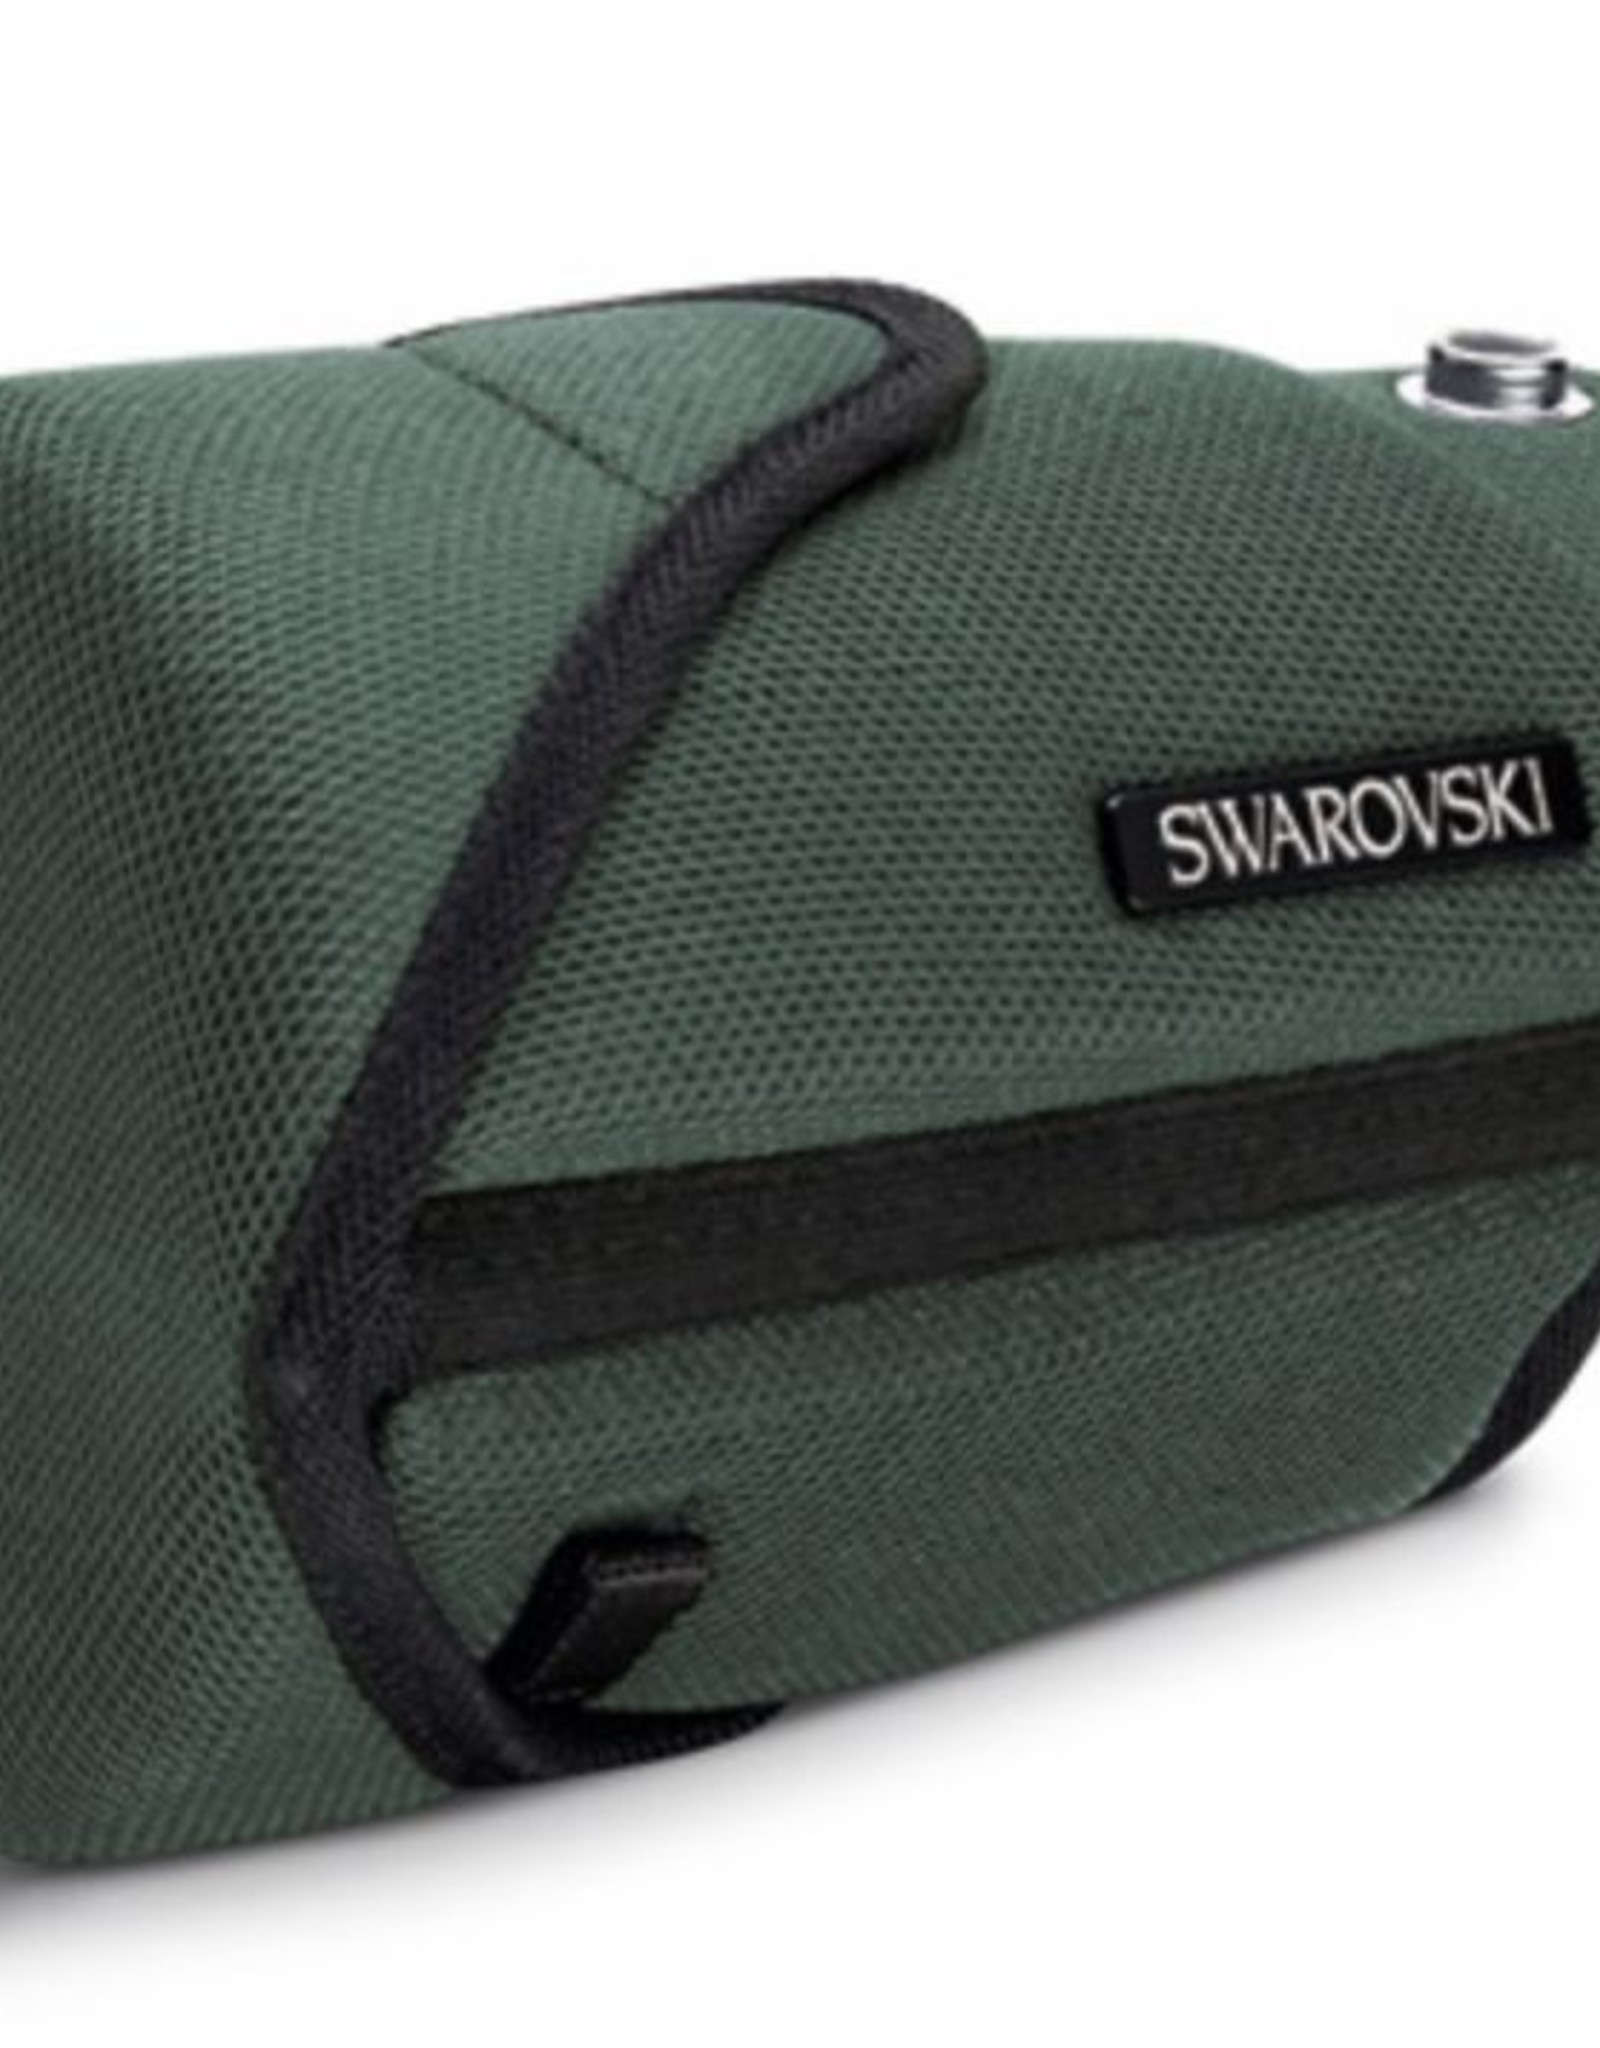 Swarovski Optik Stay-on case 65mm Objective